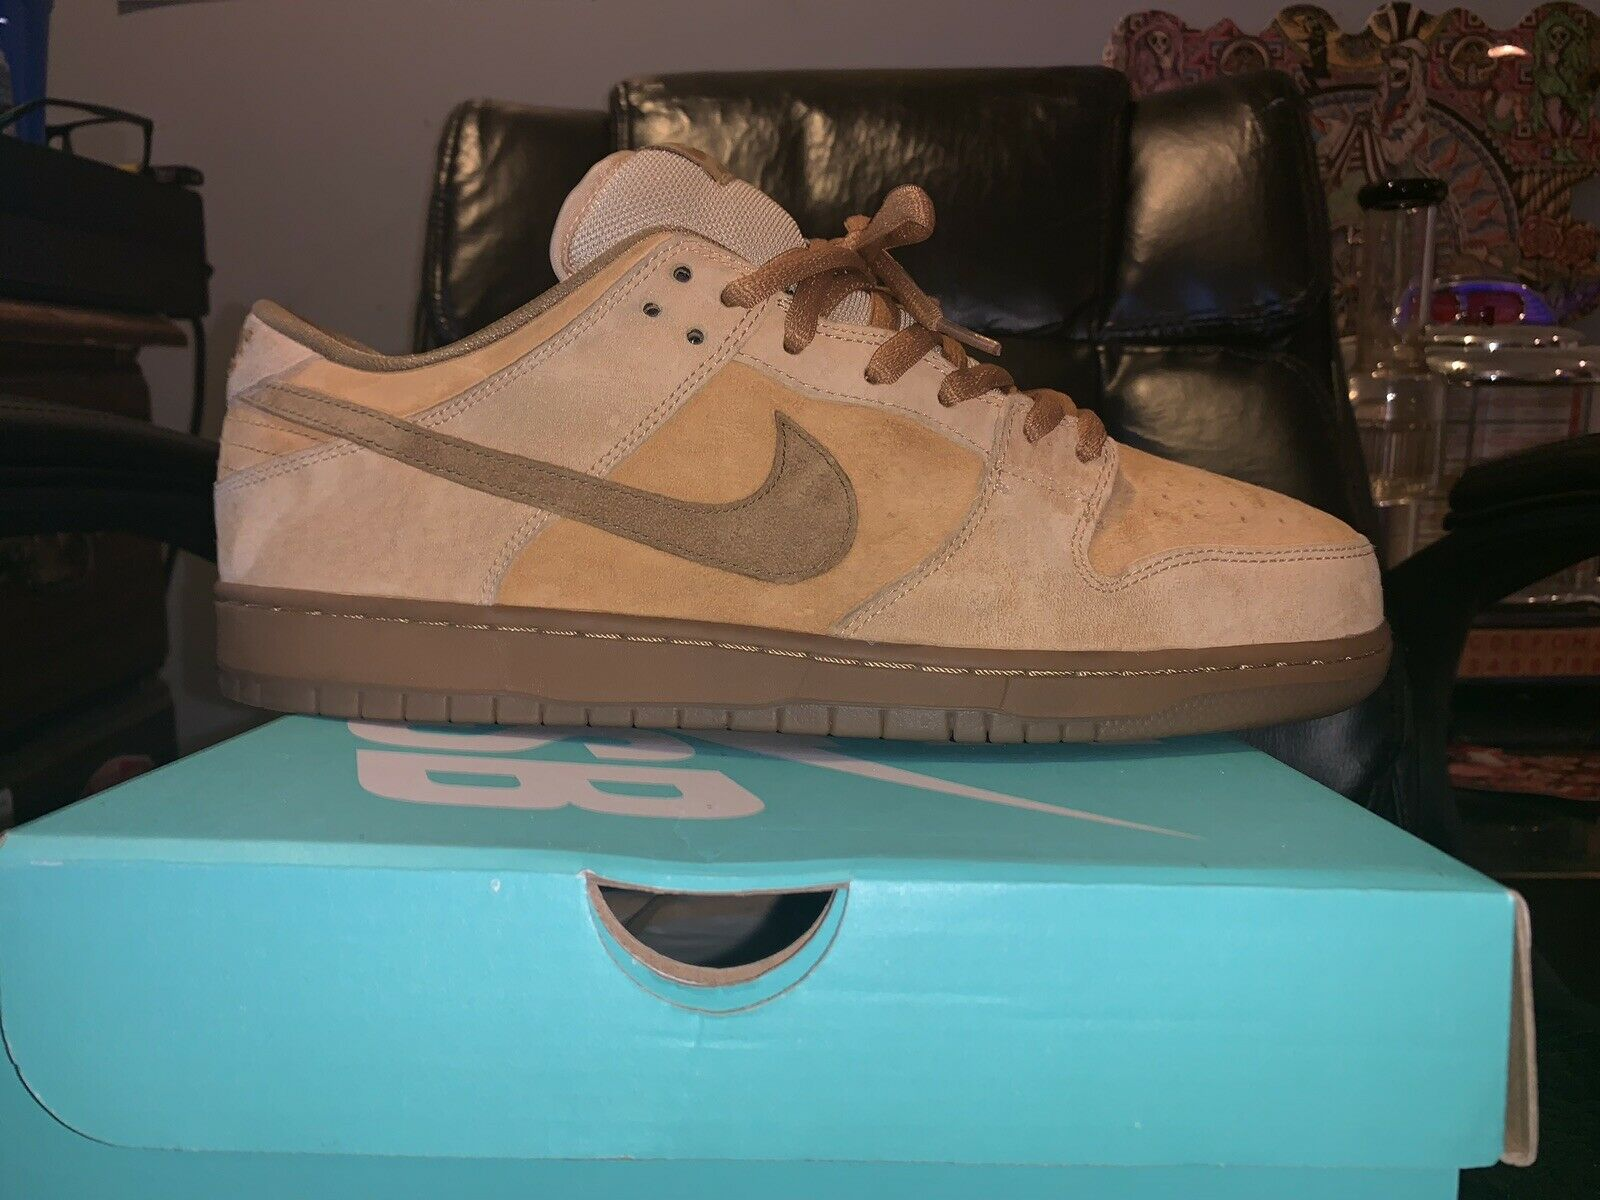 Nike SB Dunk Low Reese Forbes Reverse Penutbutter Size 13